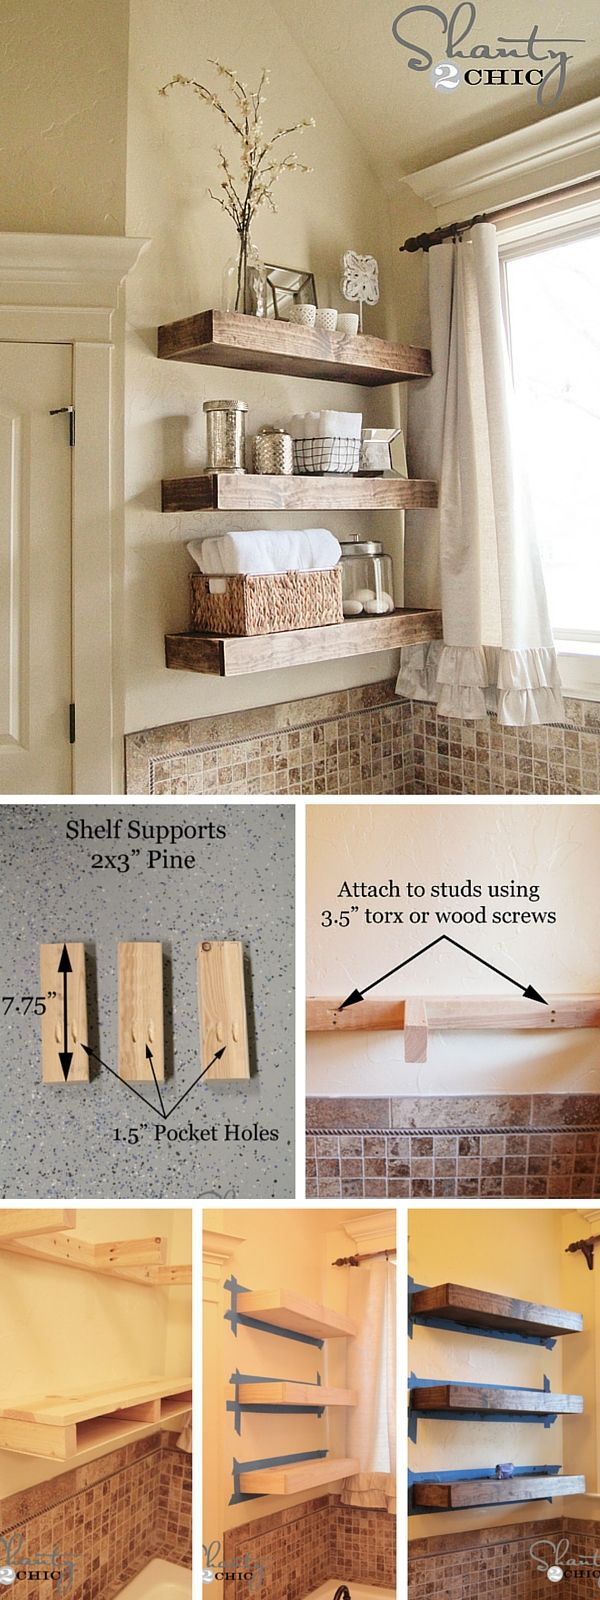 Rustic bathroom decor - 10 Diy Bathroom Upgrades To Impress